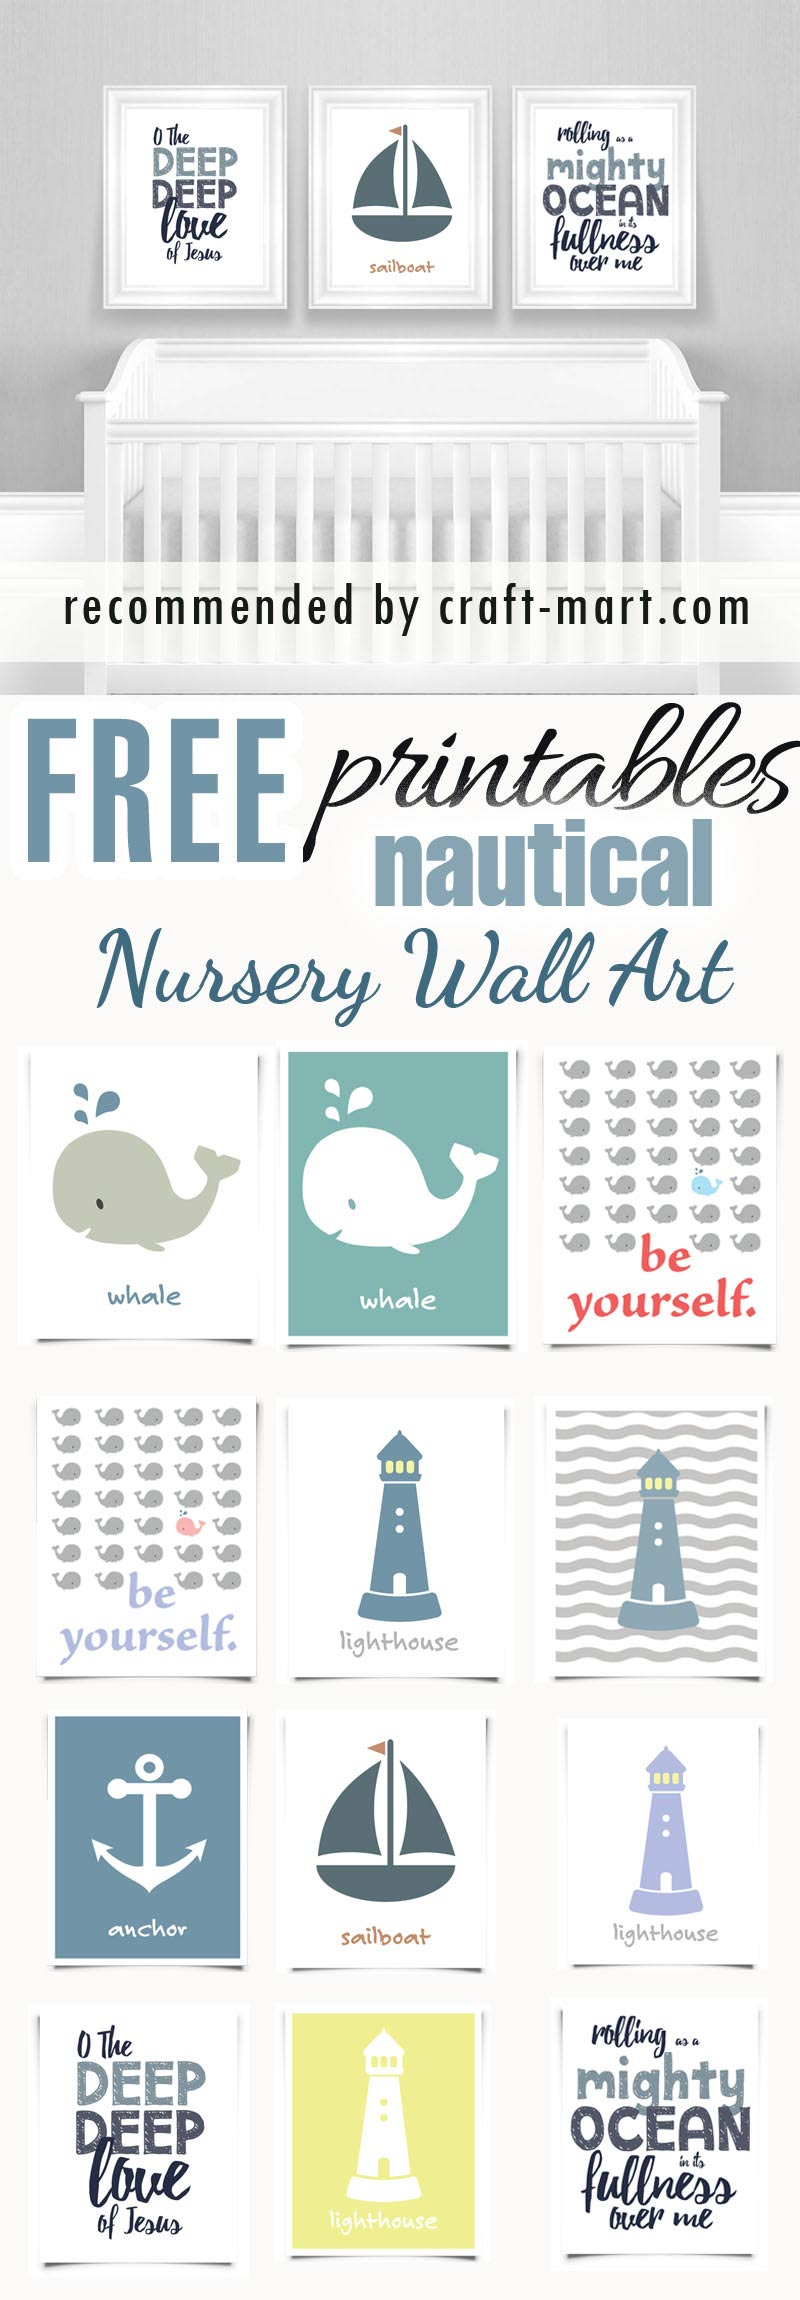 image regarding Free Printable Art identify 100+ Easiest Cost-free Nursery Printables and Wall Artwork - Craft-Mart